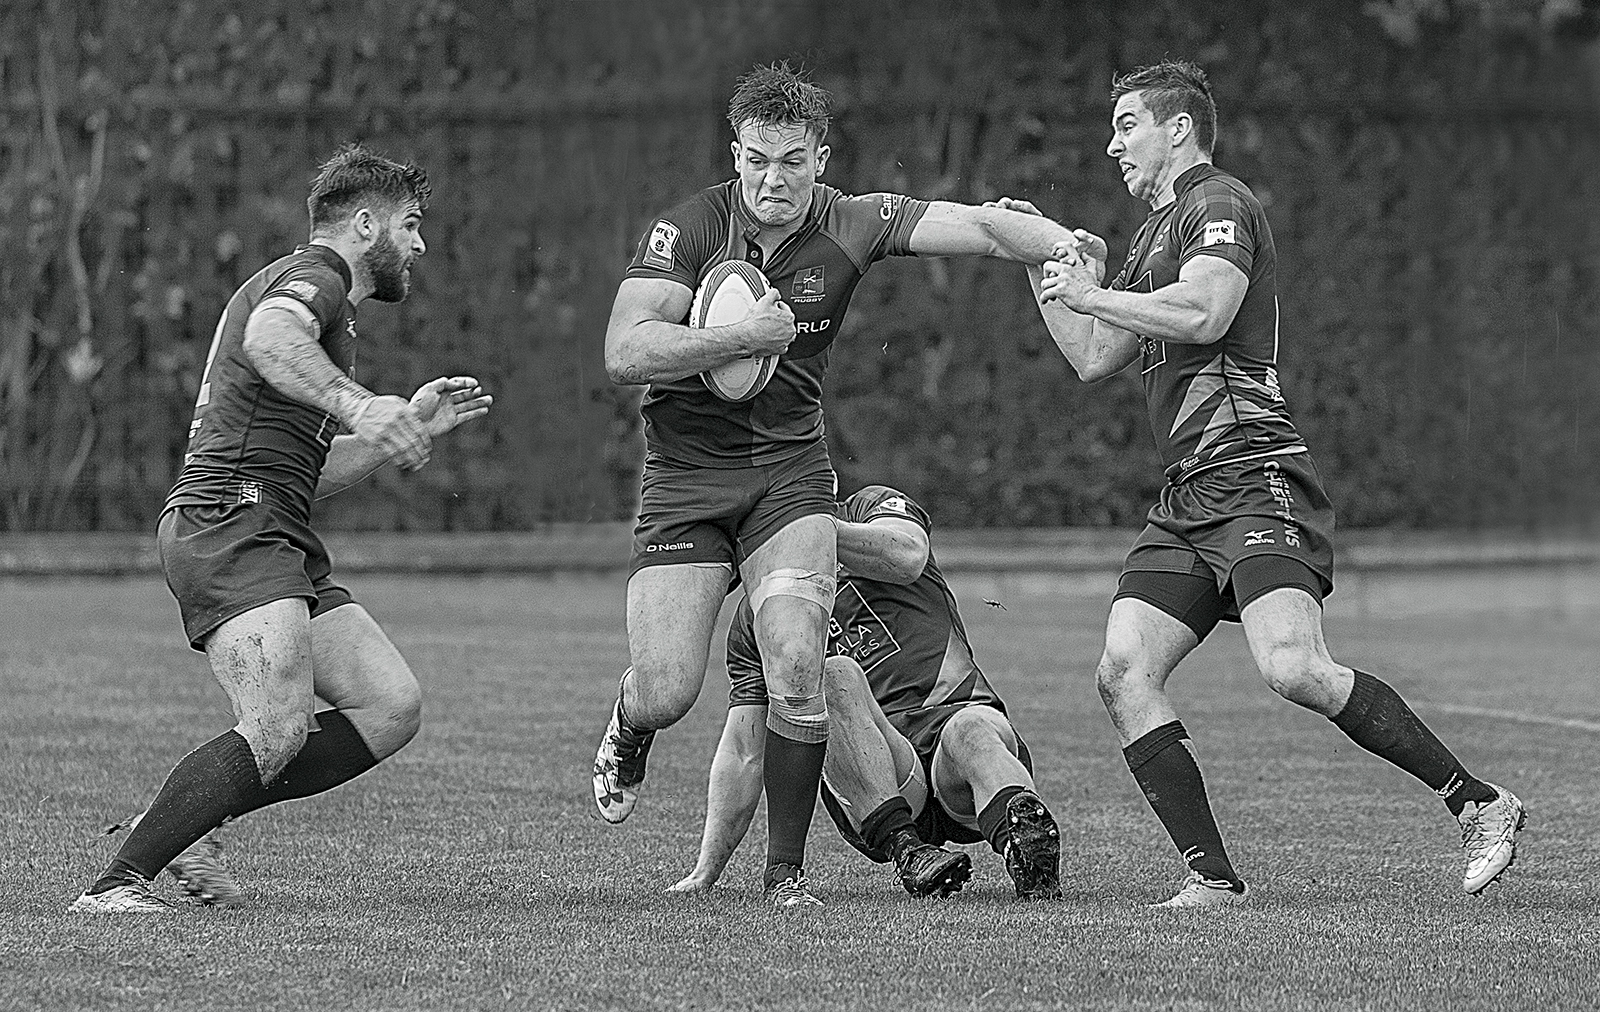 2ND ABOUT TO BE TACKLED BY JAMES ANDERSON DIV 2 MONO